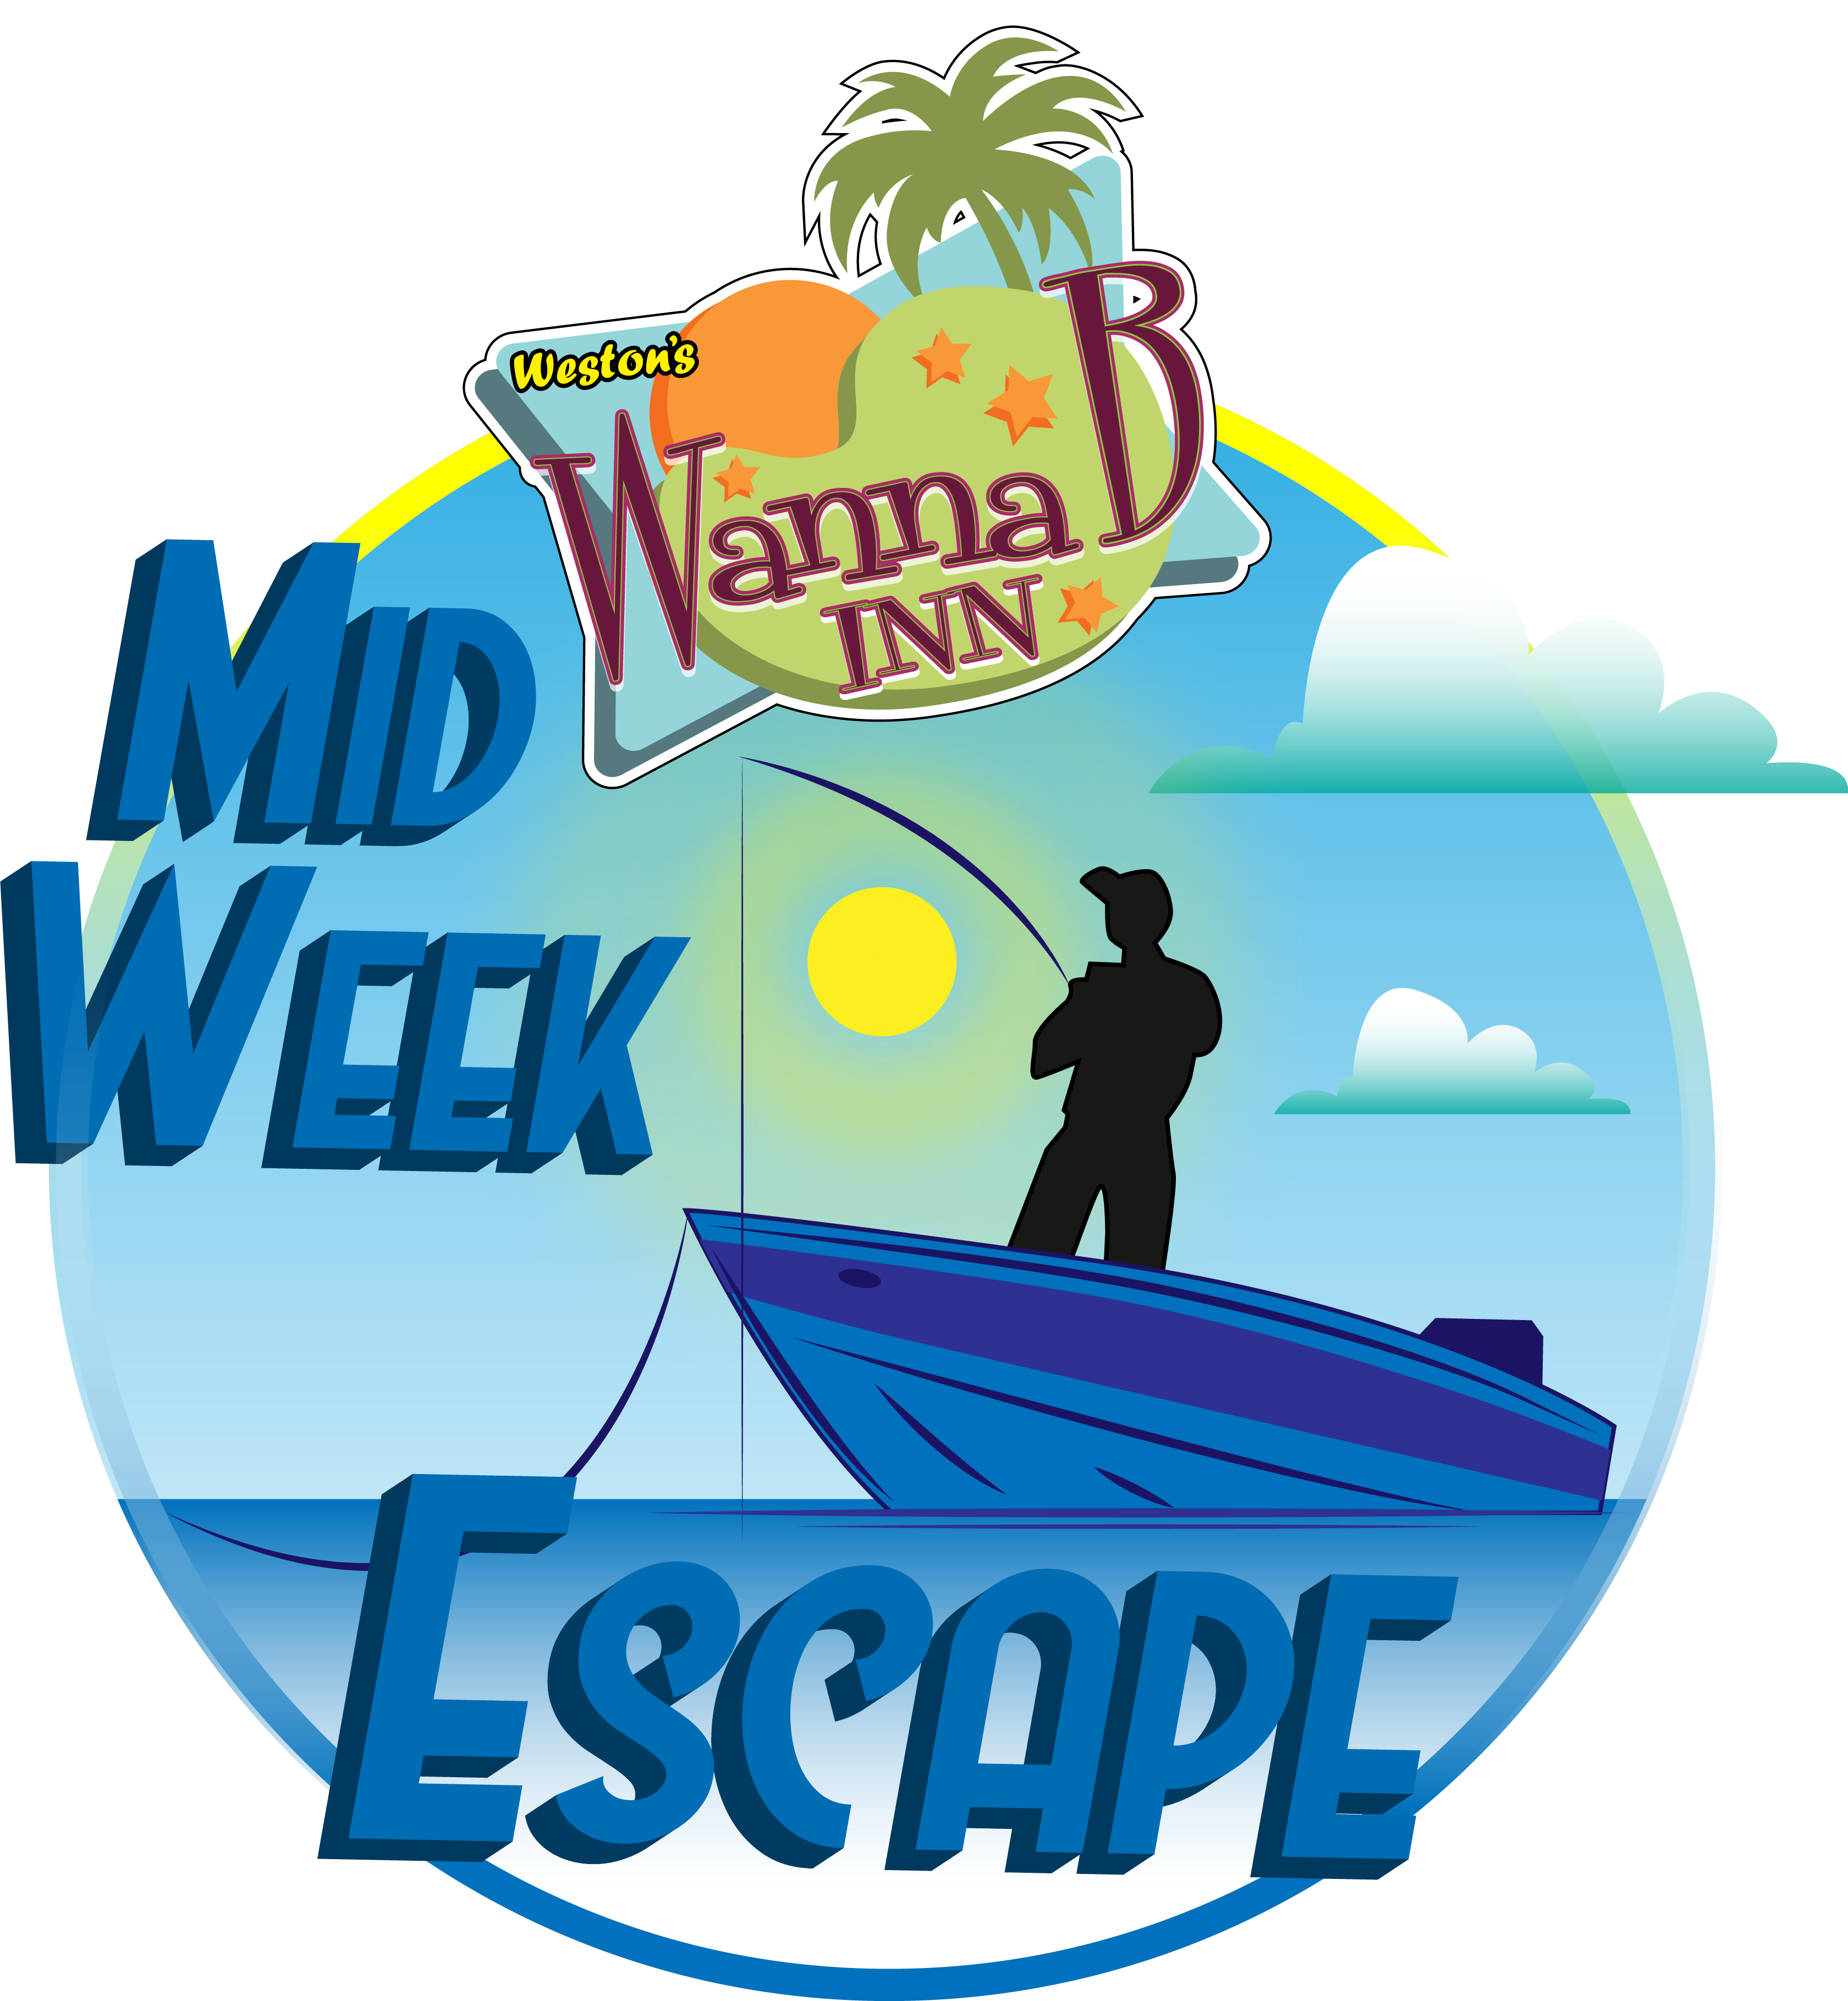 MID WEEK ESCAPE graphic